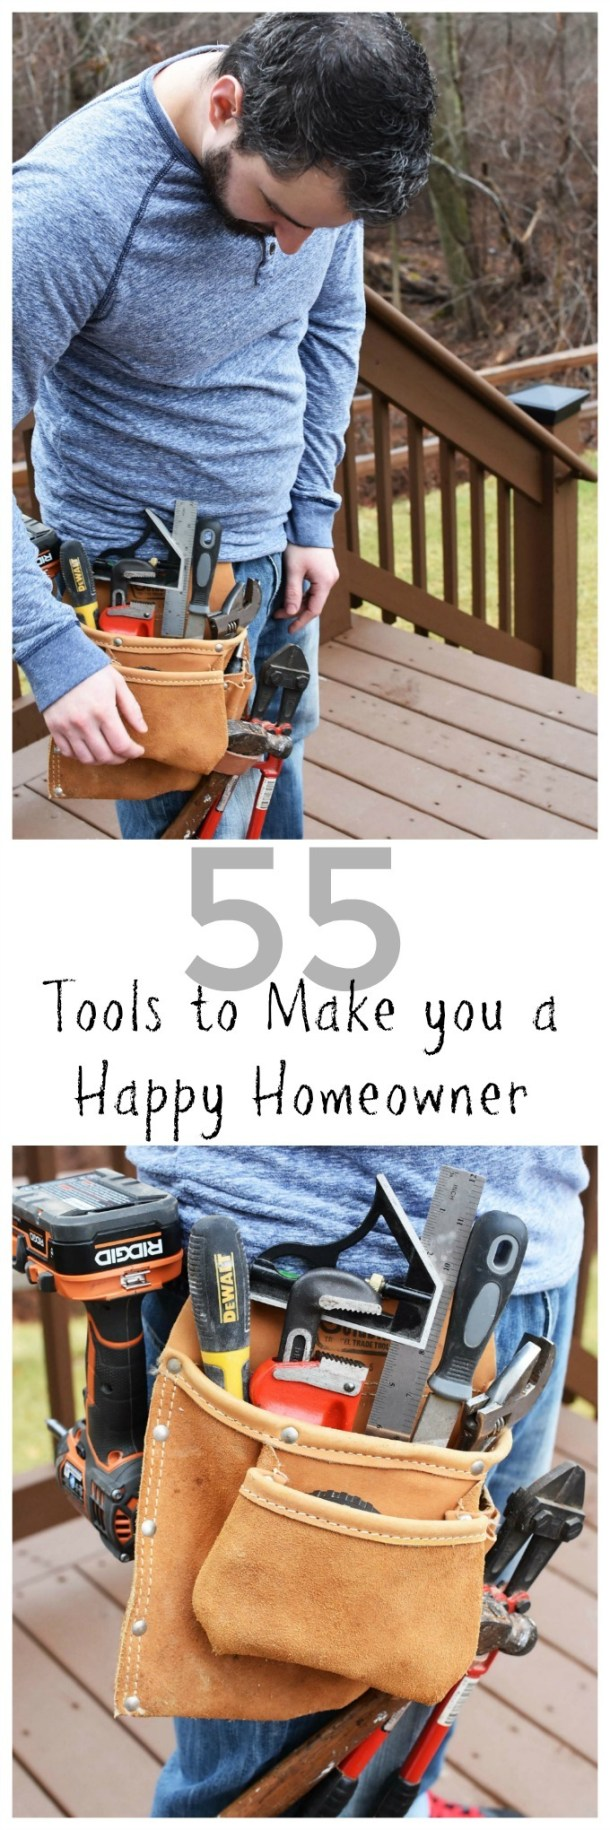 55 Tools to Make you a Happy Homeowner